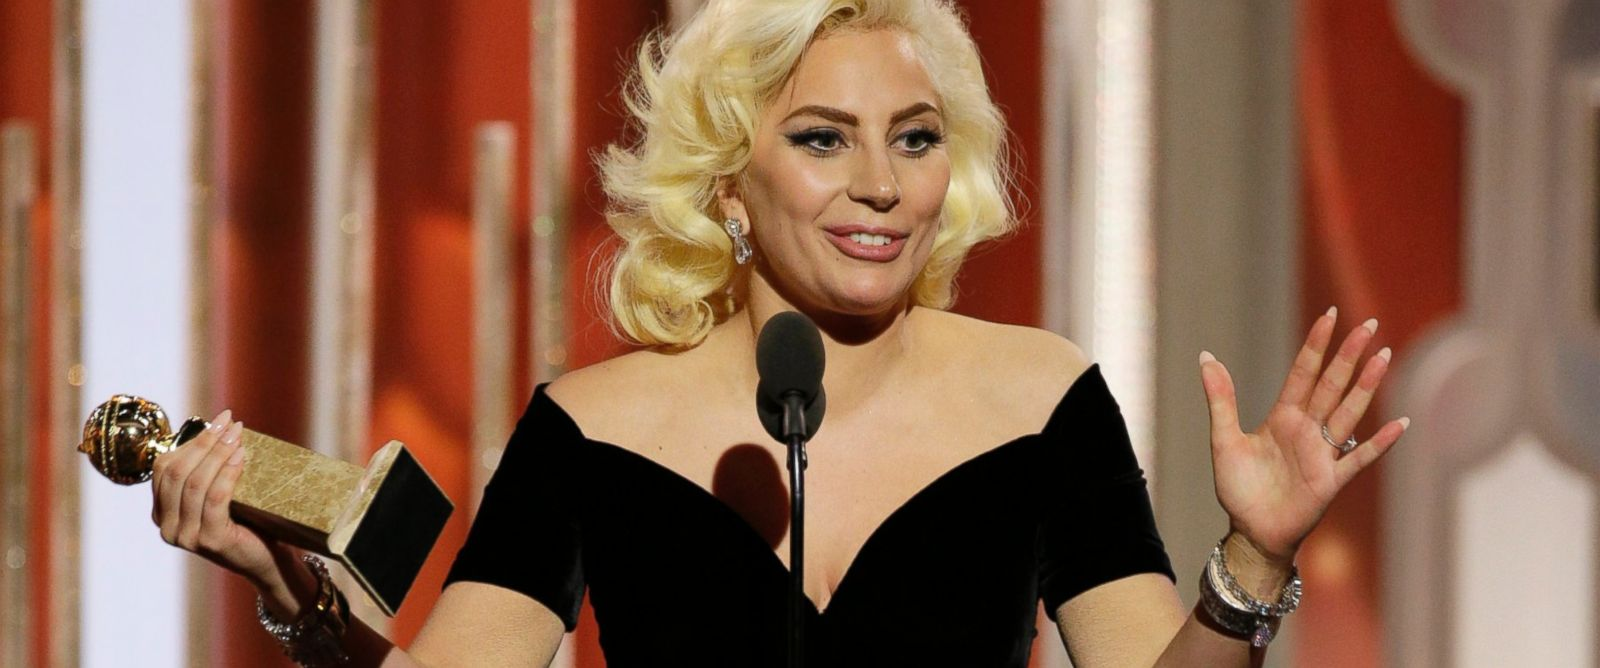 "PHOTO: Lady Gaga accepts the award for best actress in a limited series or TV movie for her role in, ""American Horror Story: Hotel"", at the 73rd Annual Golden Globe Awards at the Beverly Hilton Hotel in Beverly Hills, Calif., on Jan. 10, 2016."